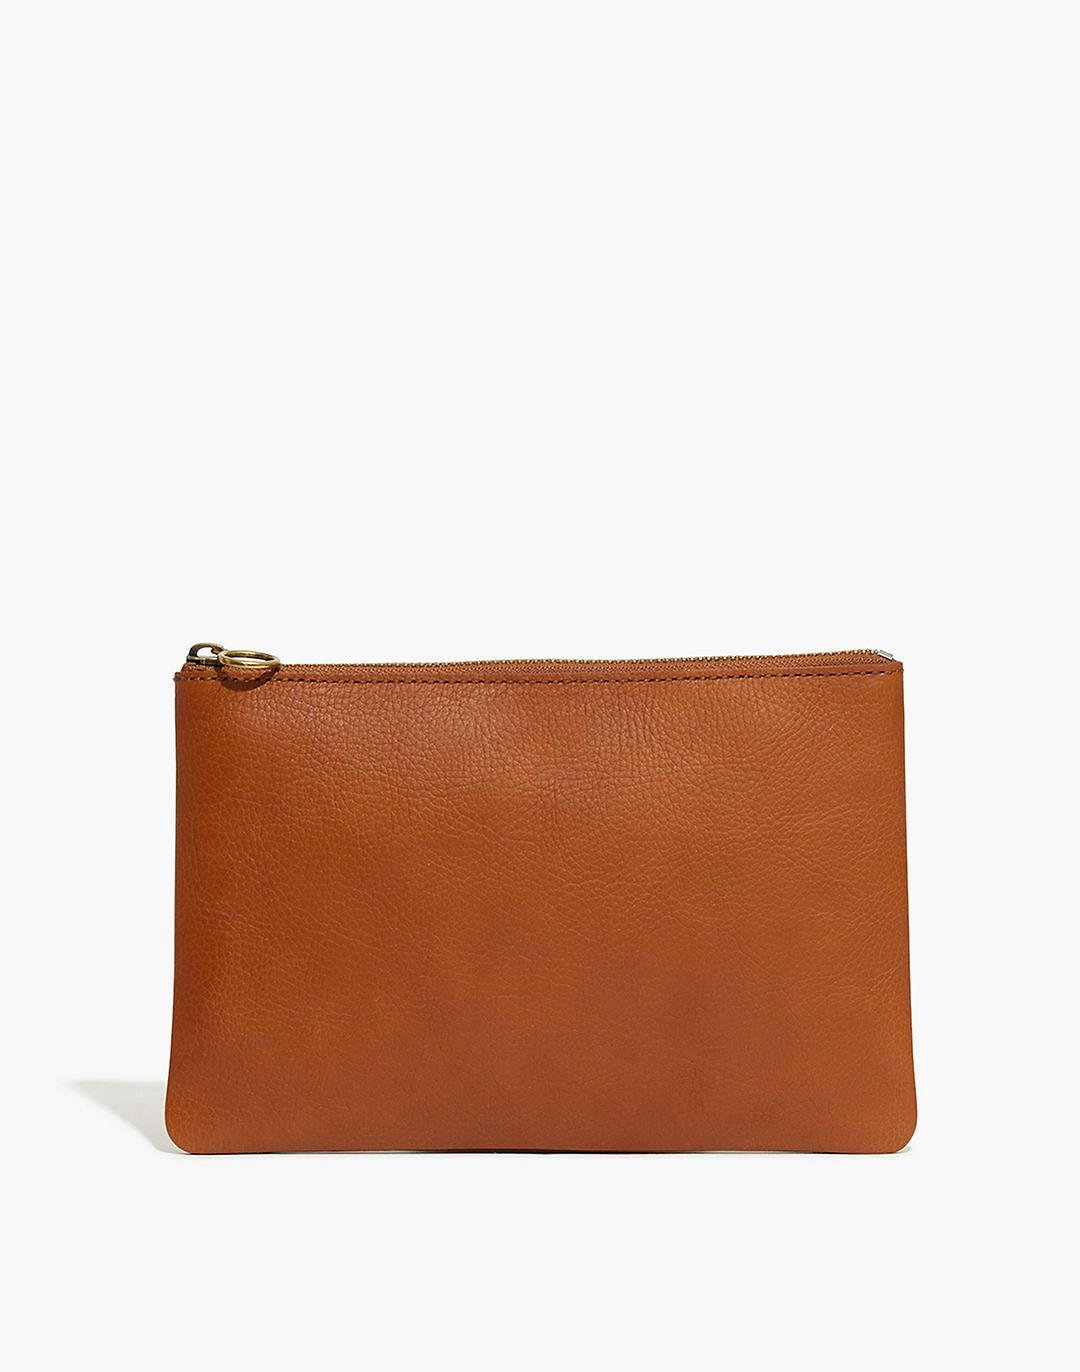 The Leather Pouch Clutch: Mama Monogrammed Edition